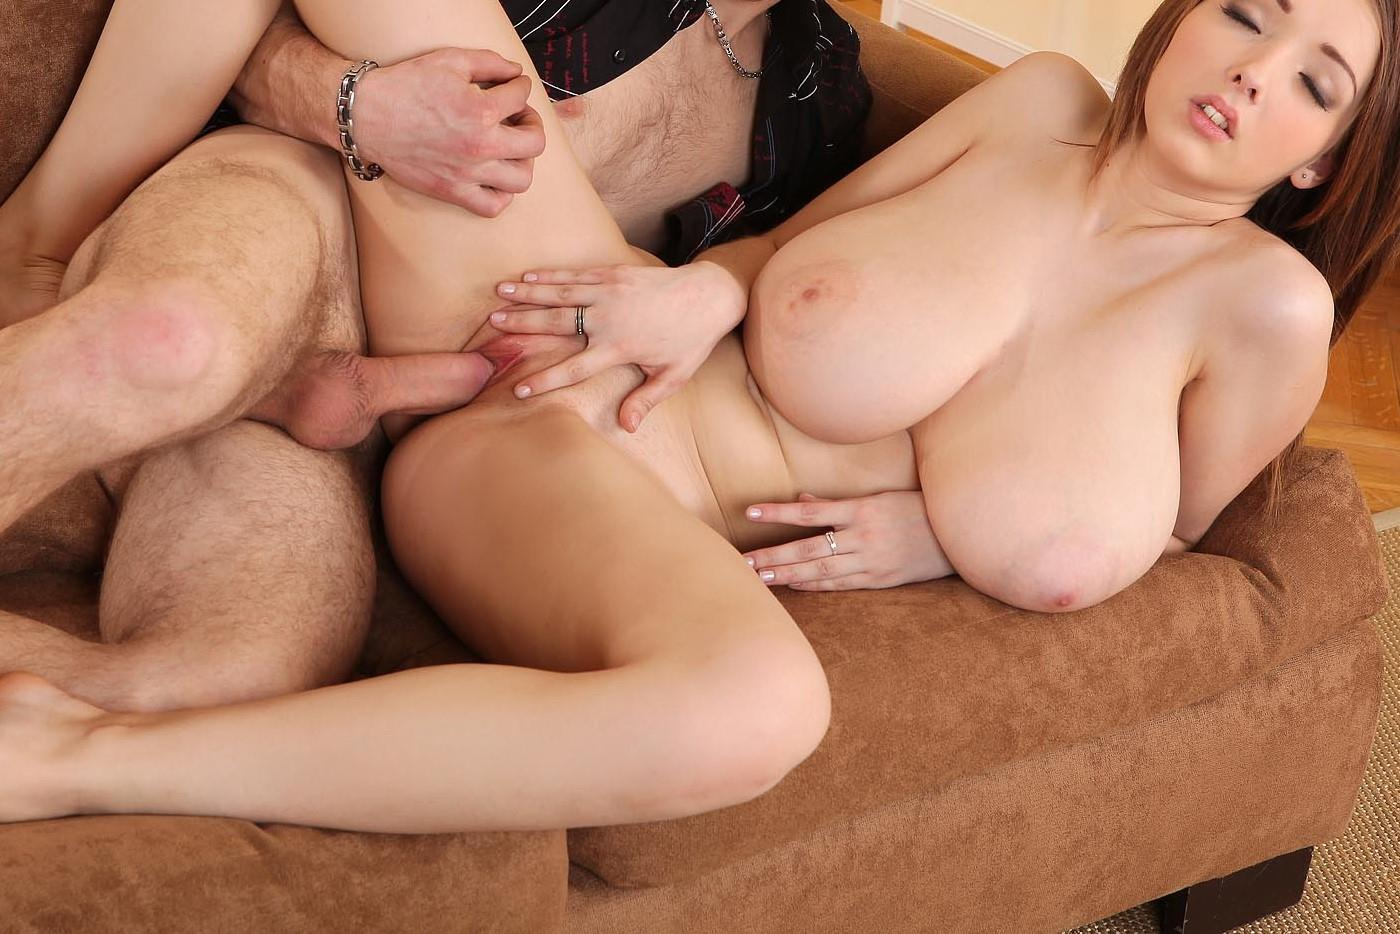 Lucie Wilde - pussy and nipples